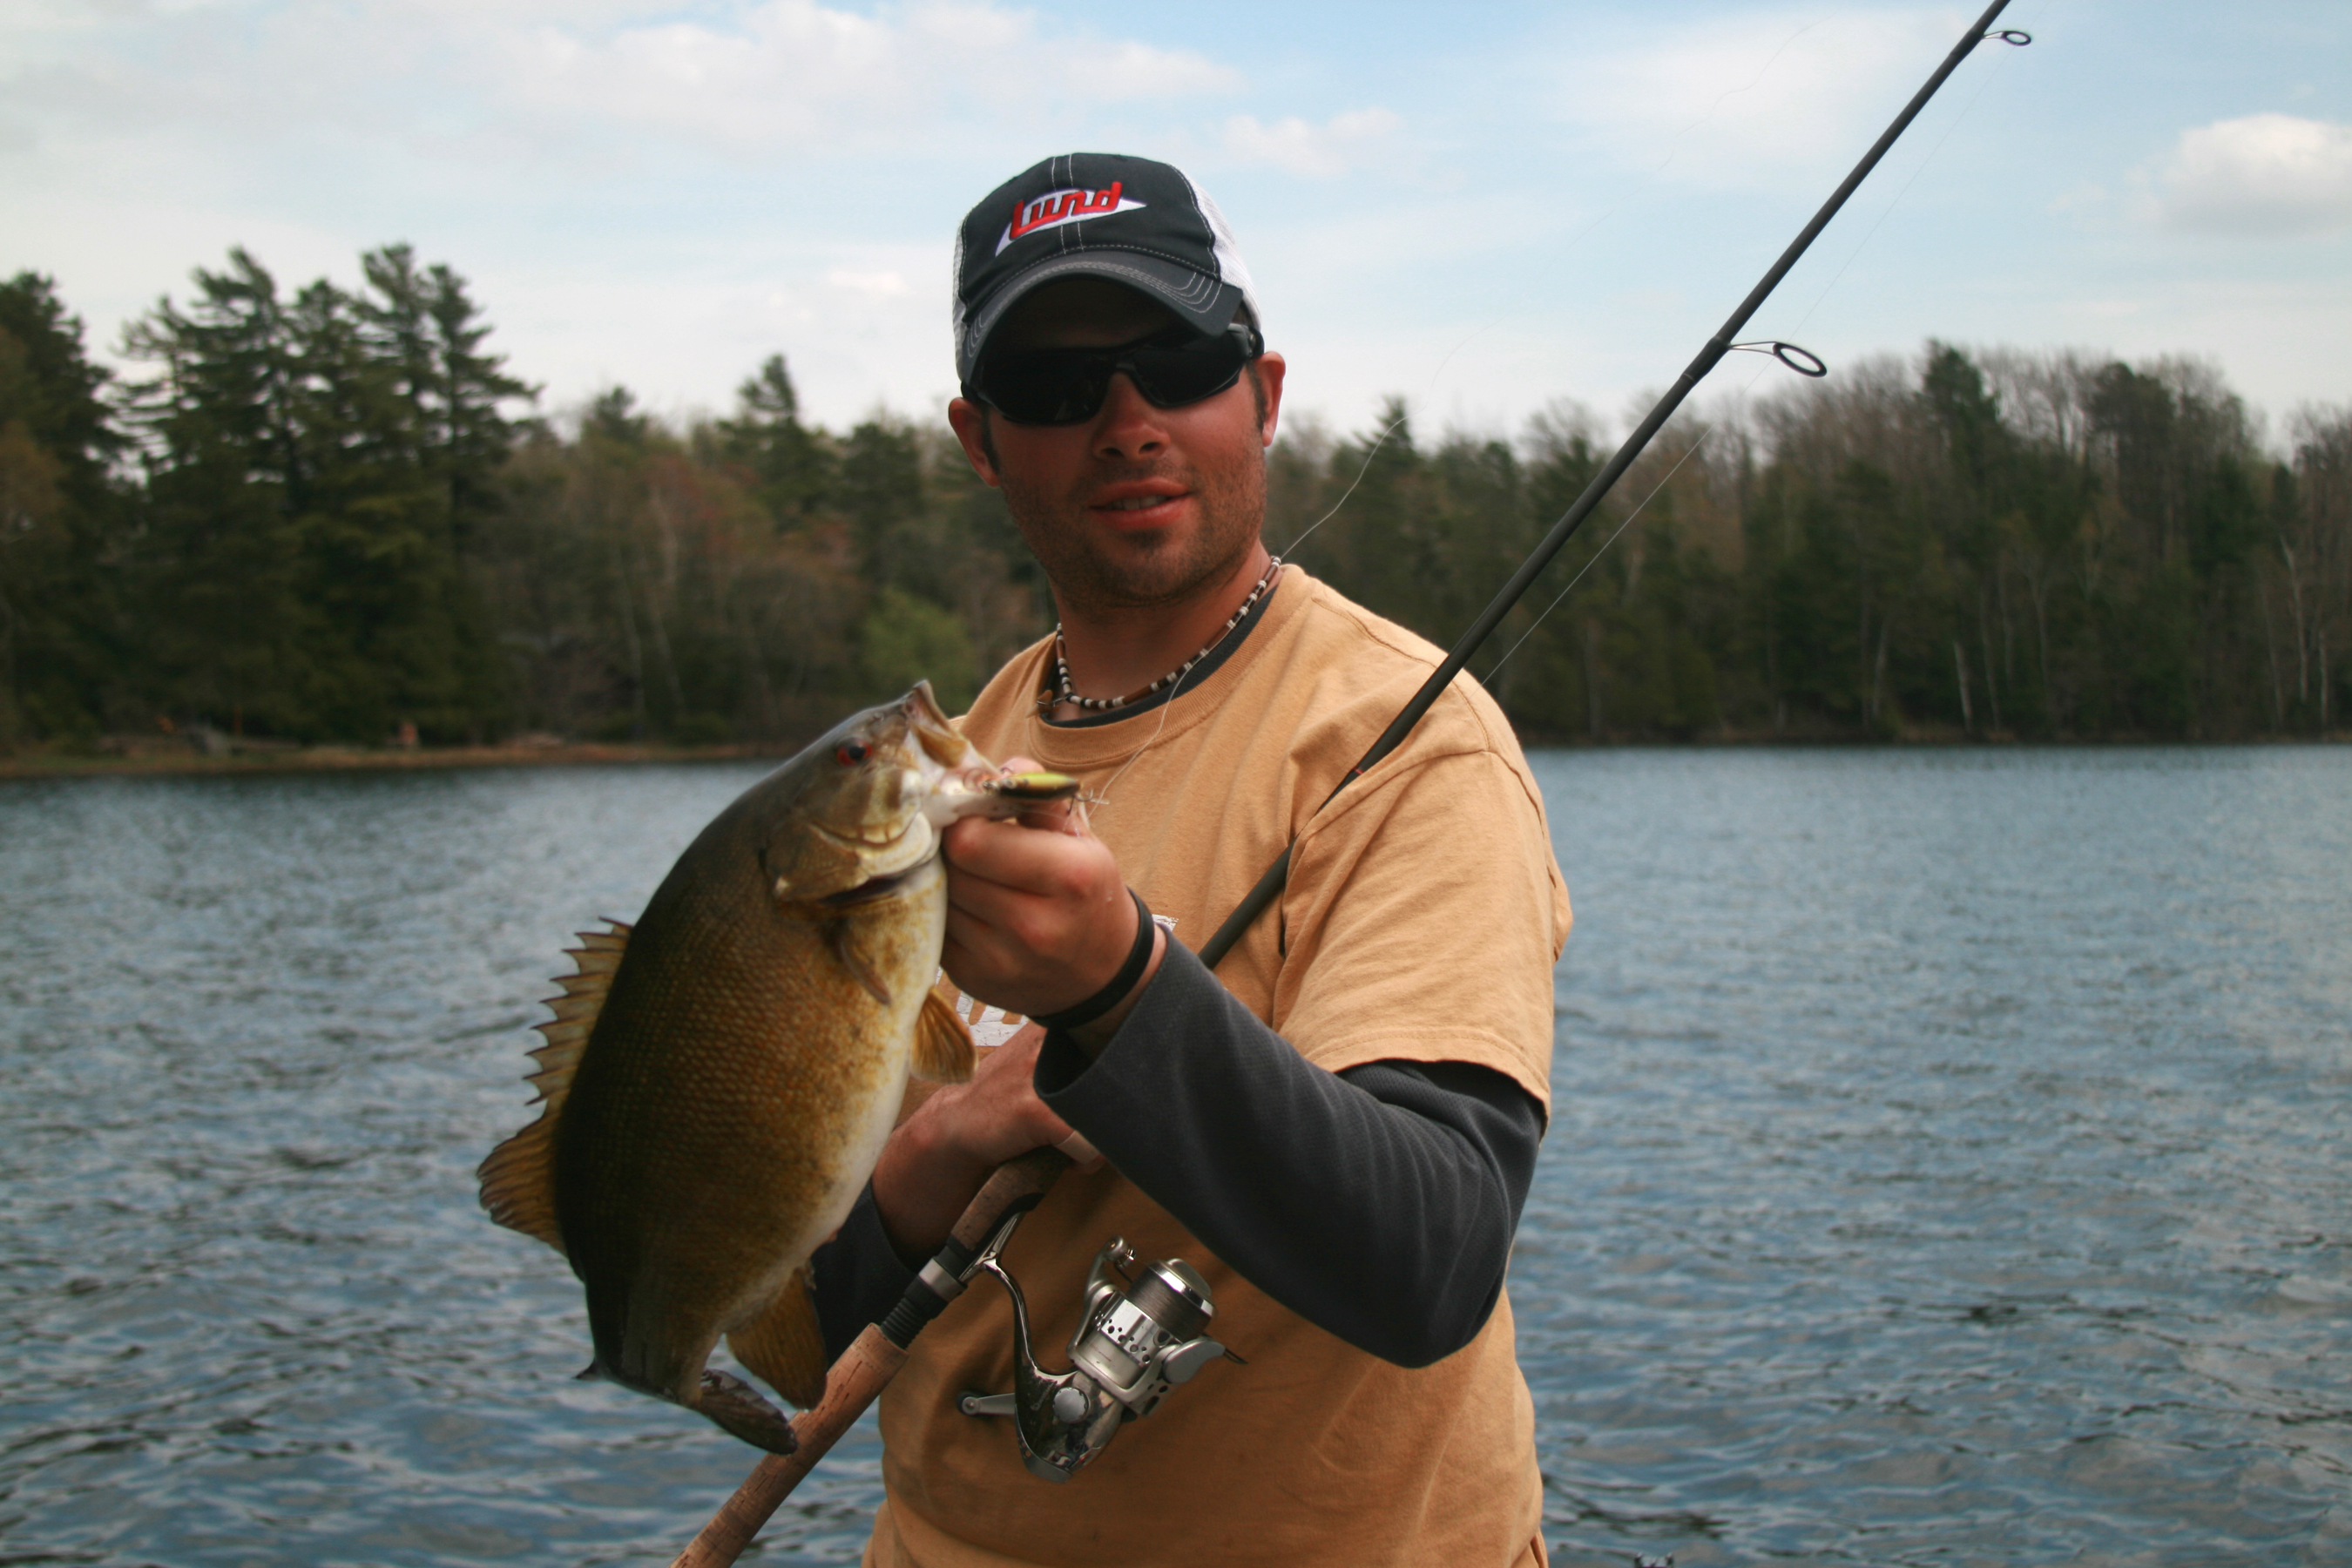 Spring meteorology and smallmouth bass andrew ragas fishing for Spring bass fishing